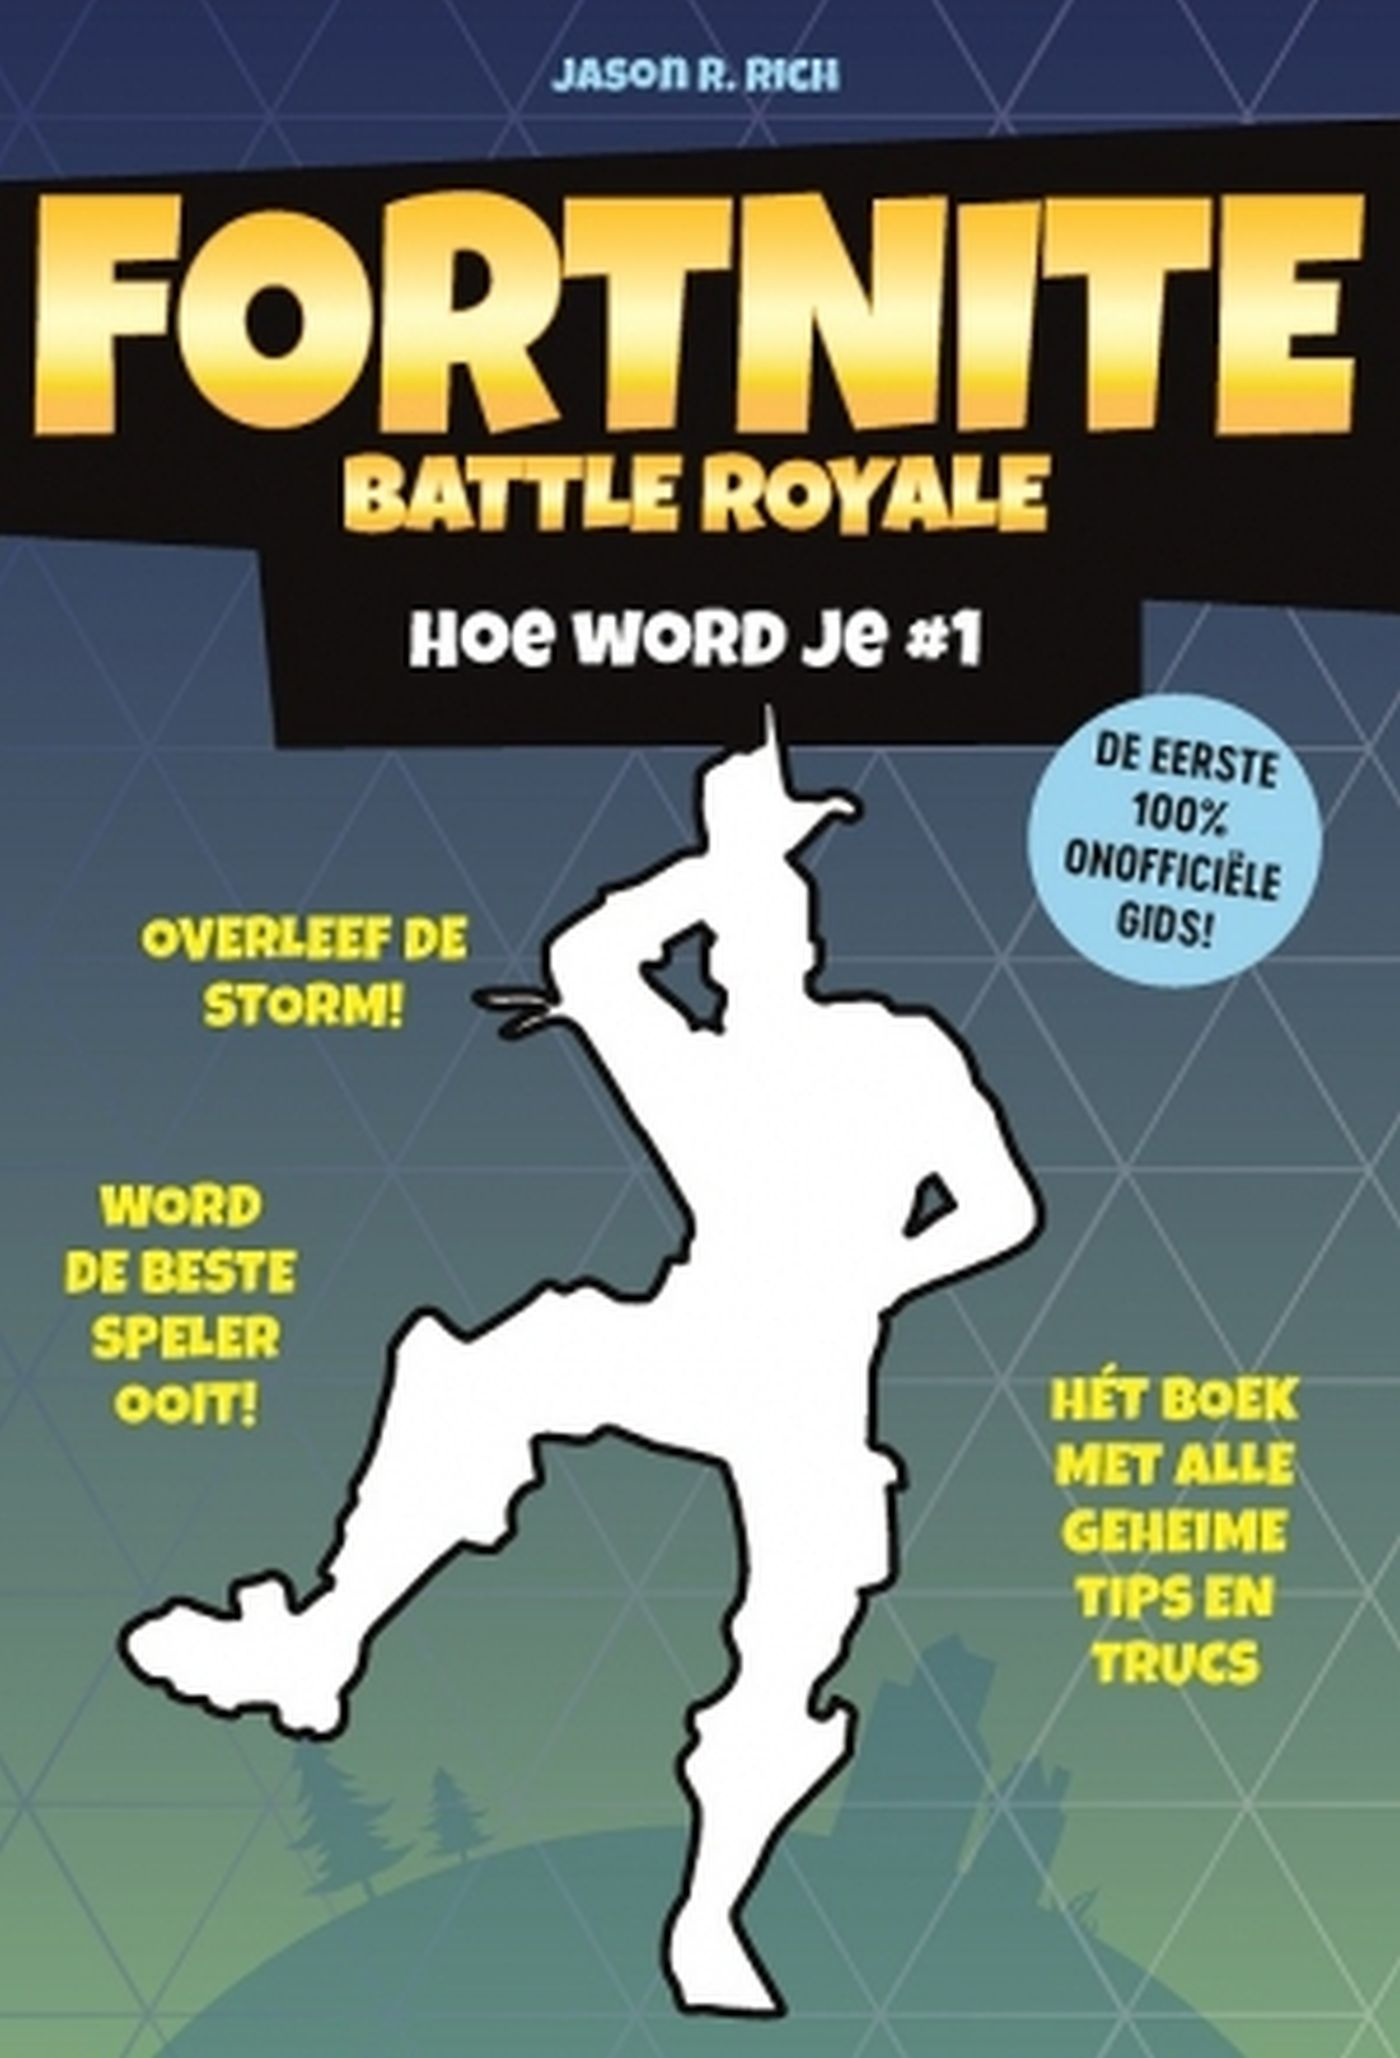 Fortnite Battle Royale: Hoe word je # 1